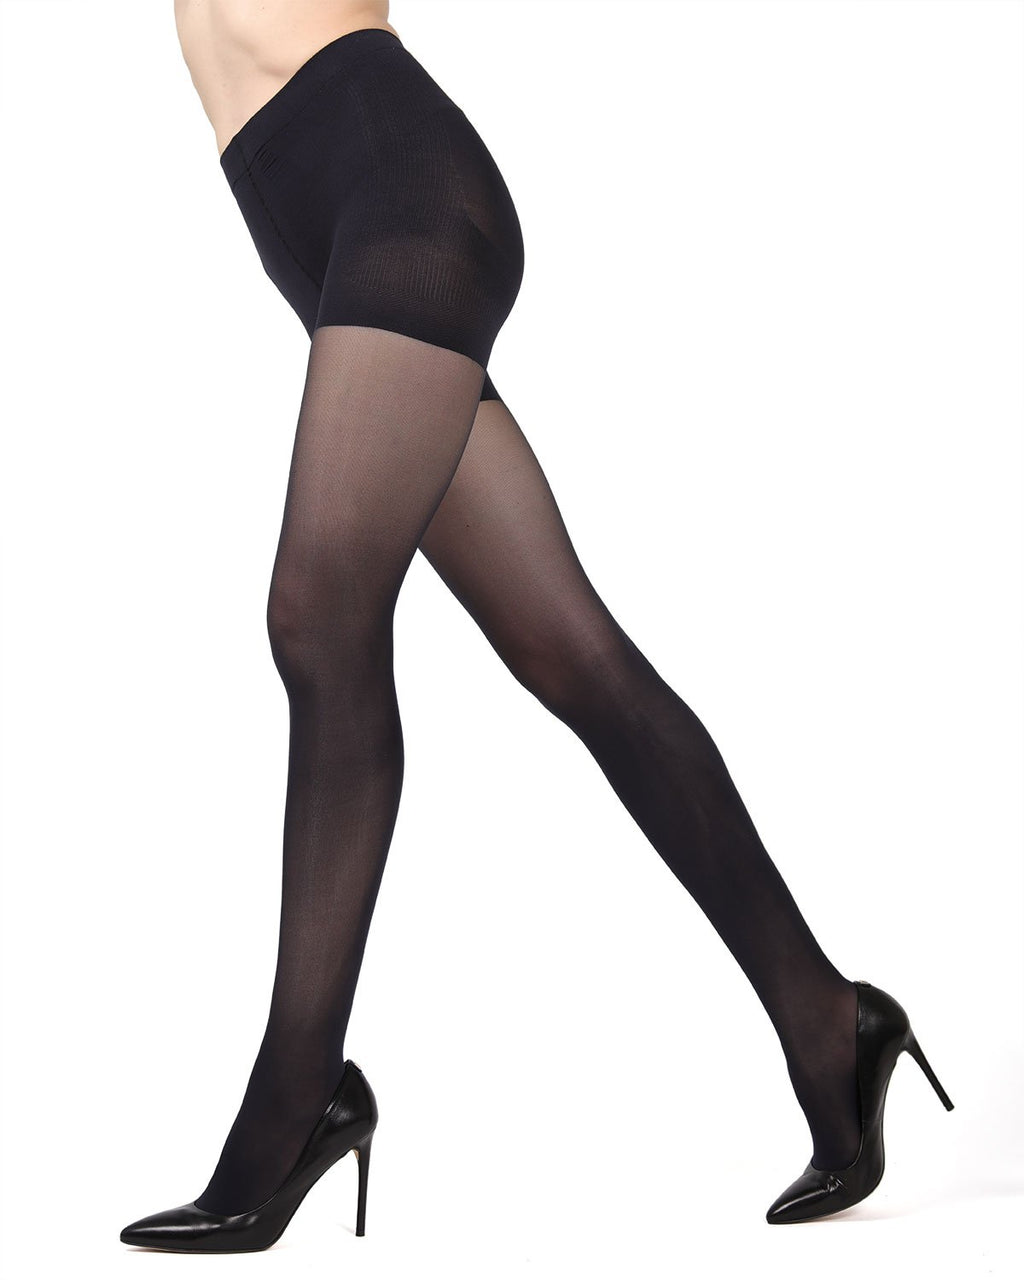 MeMoi | Navy FirmFit Control Top Tights | Women's Tights - Hosiery